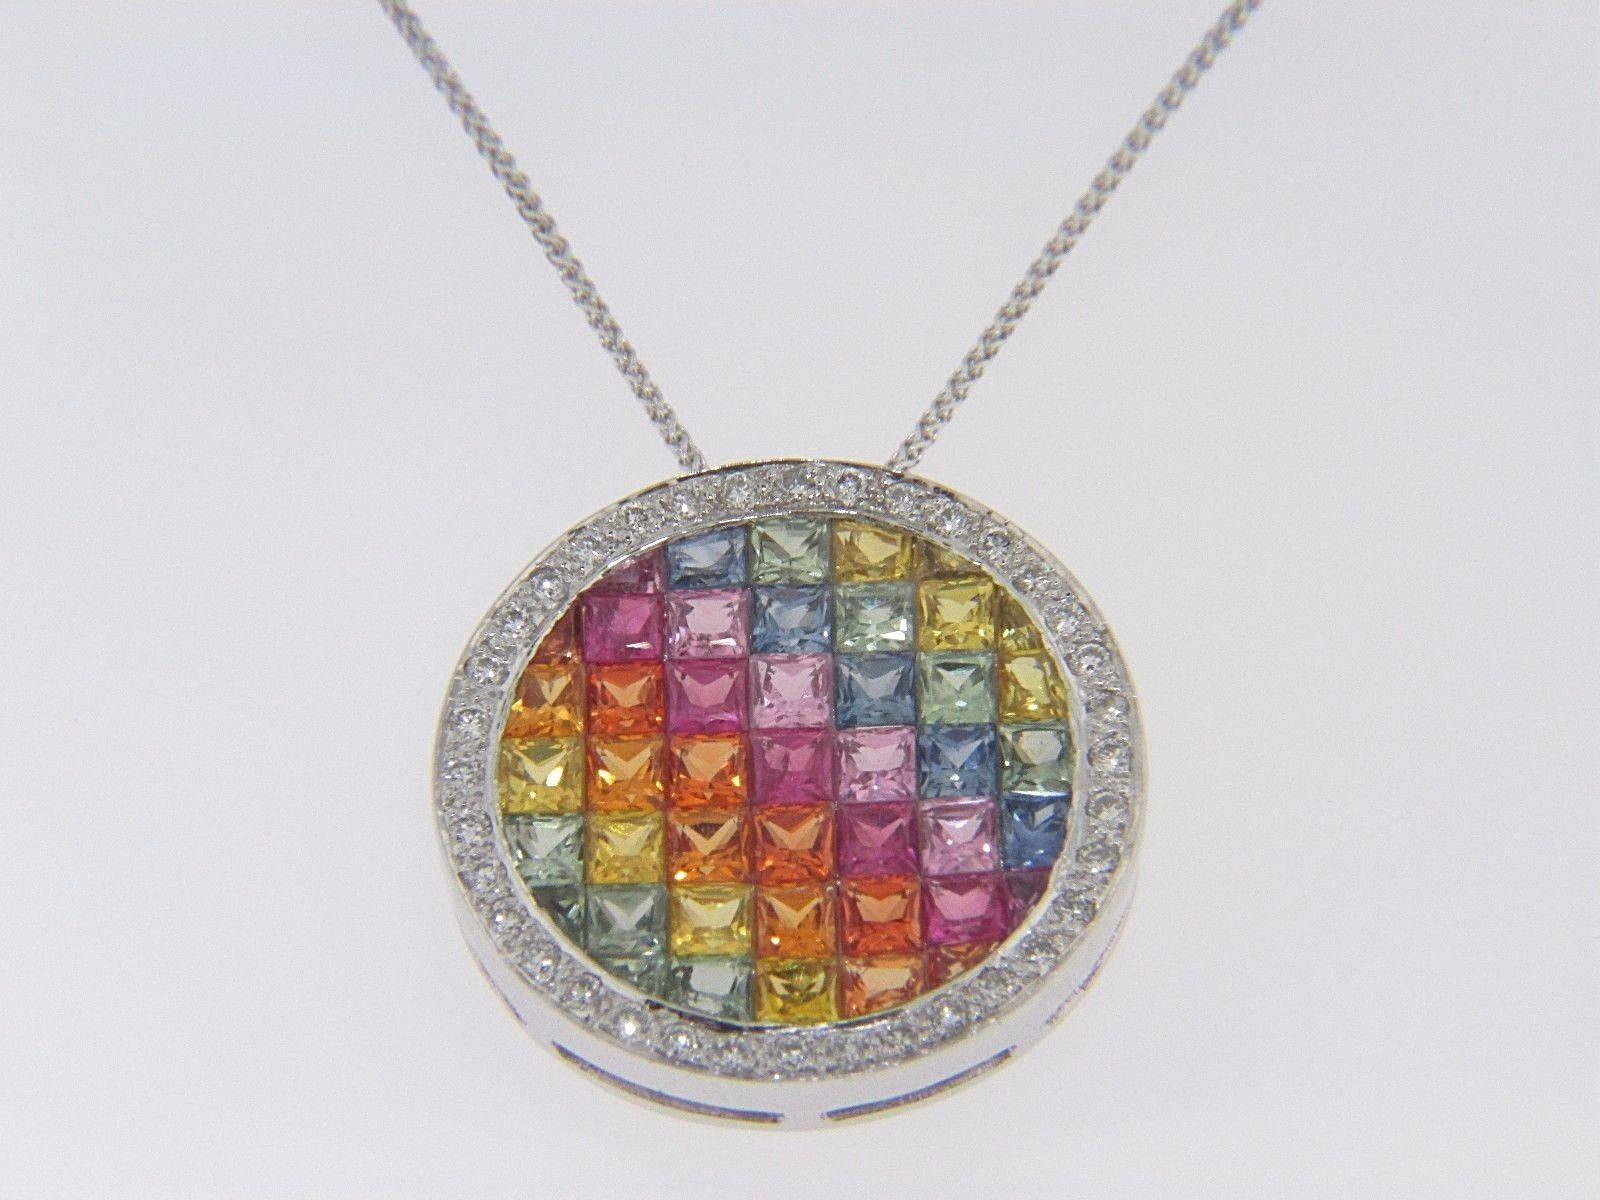 676ctw multi color sapphire diamond circle pendant necklace in total combined carat weight is approx 676cts a very beautiful colorful design the price of this necklace is 118000 mozeypictures Image collections